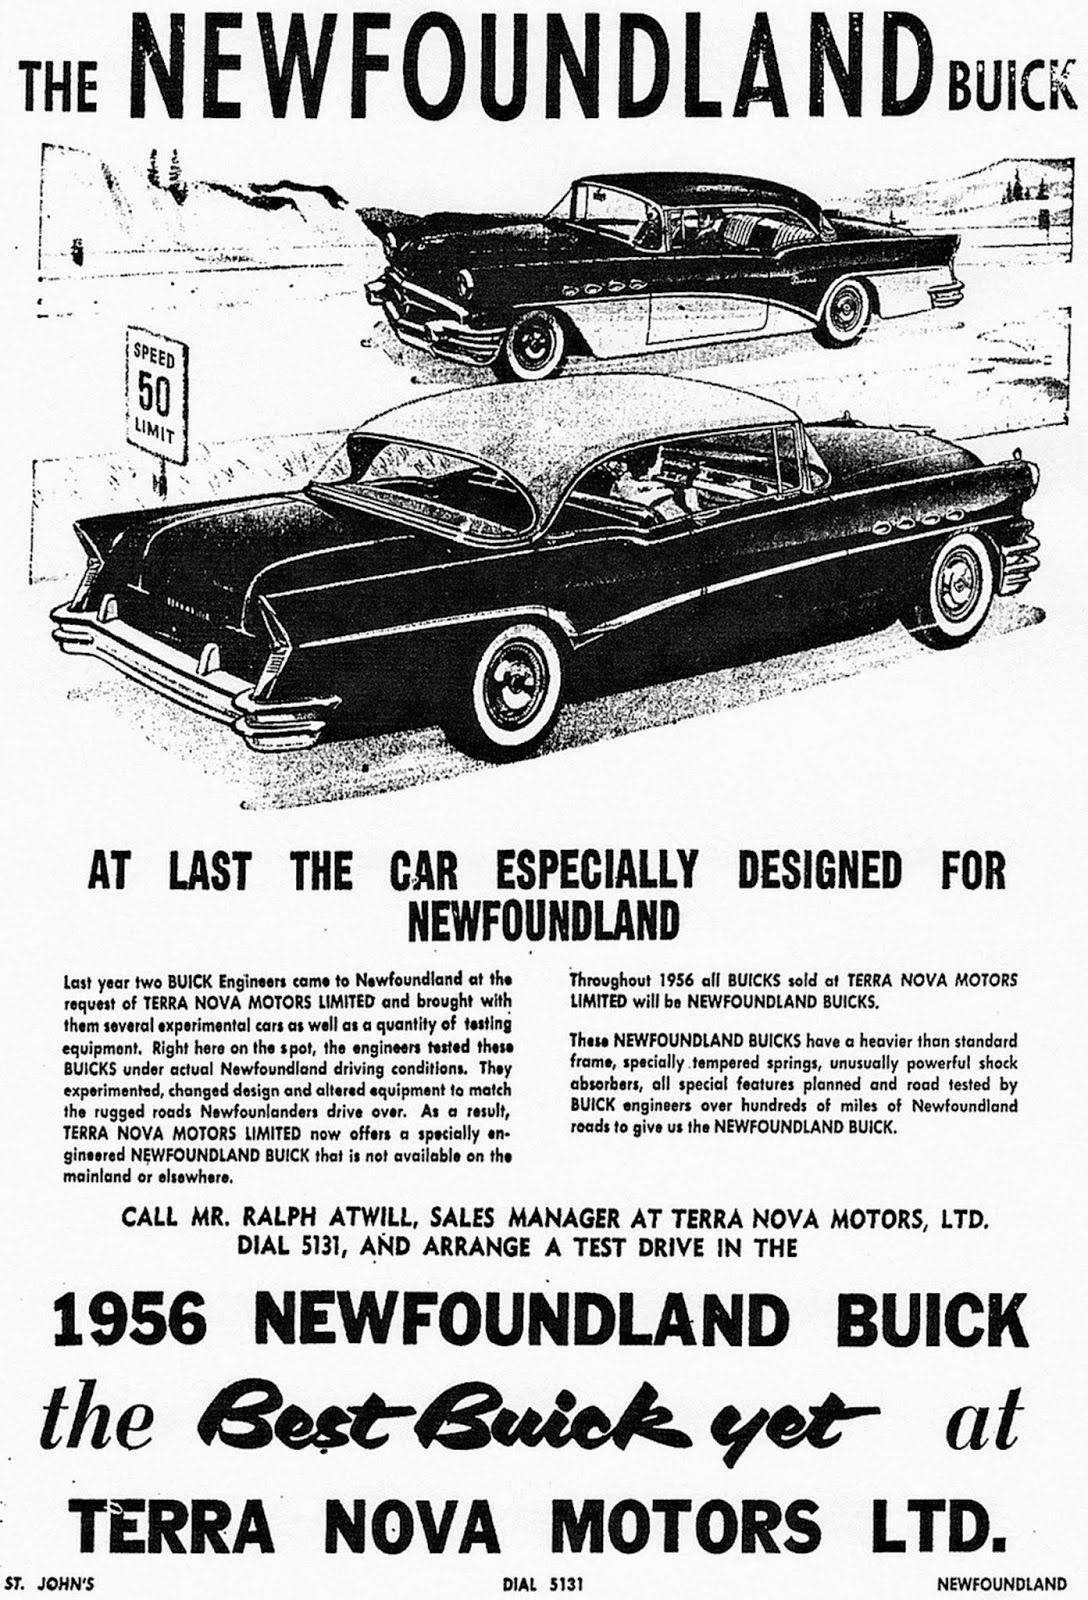 Pin by Cecil Worley on classic cars | Pinterest | Cars